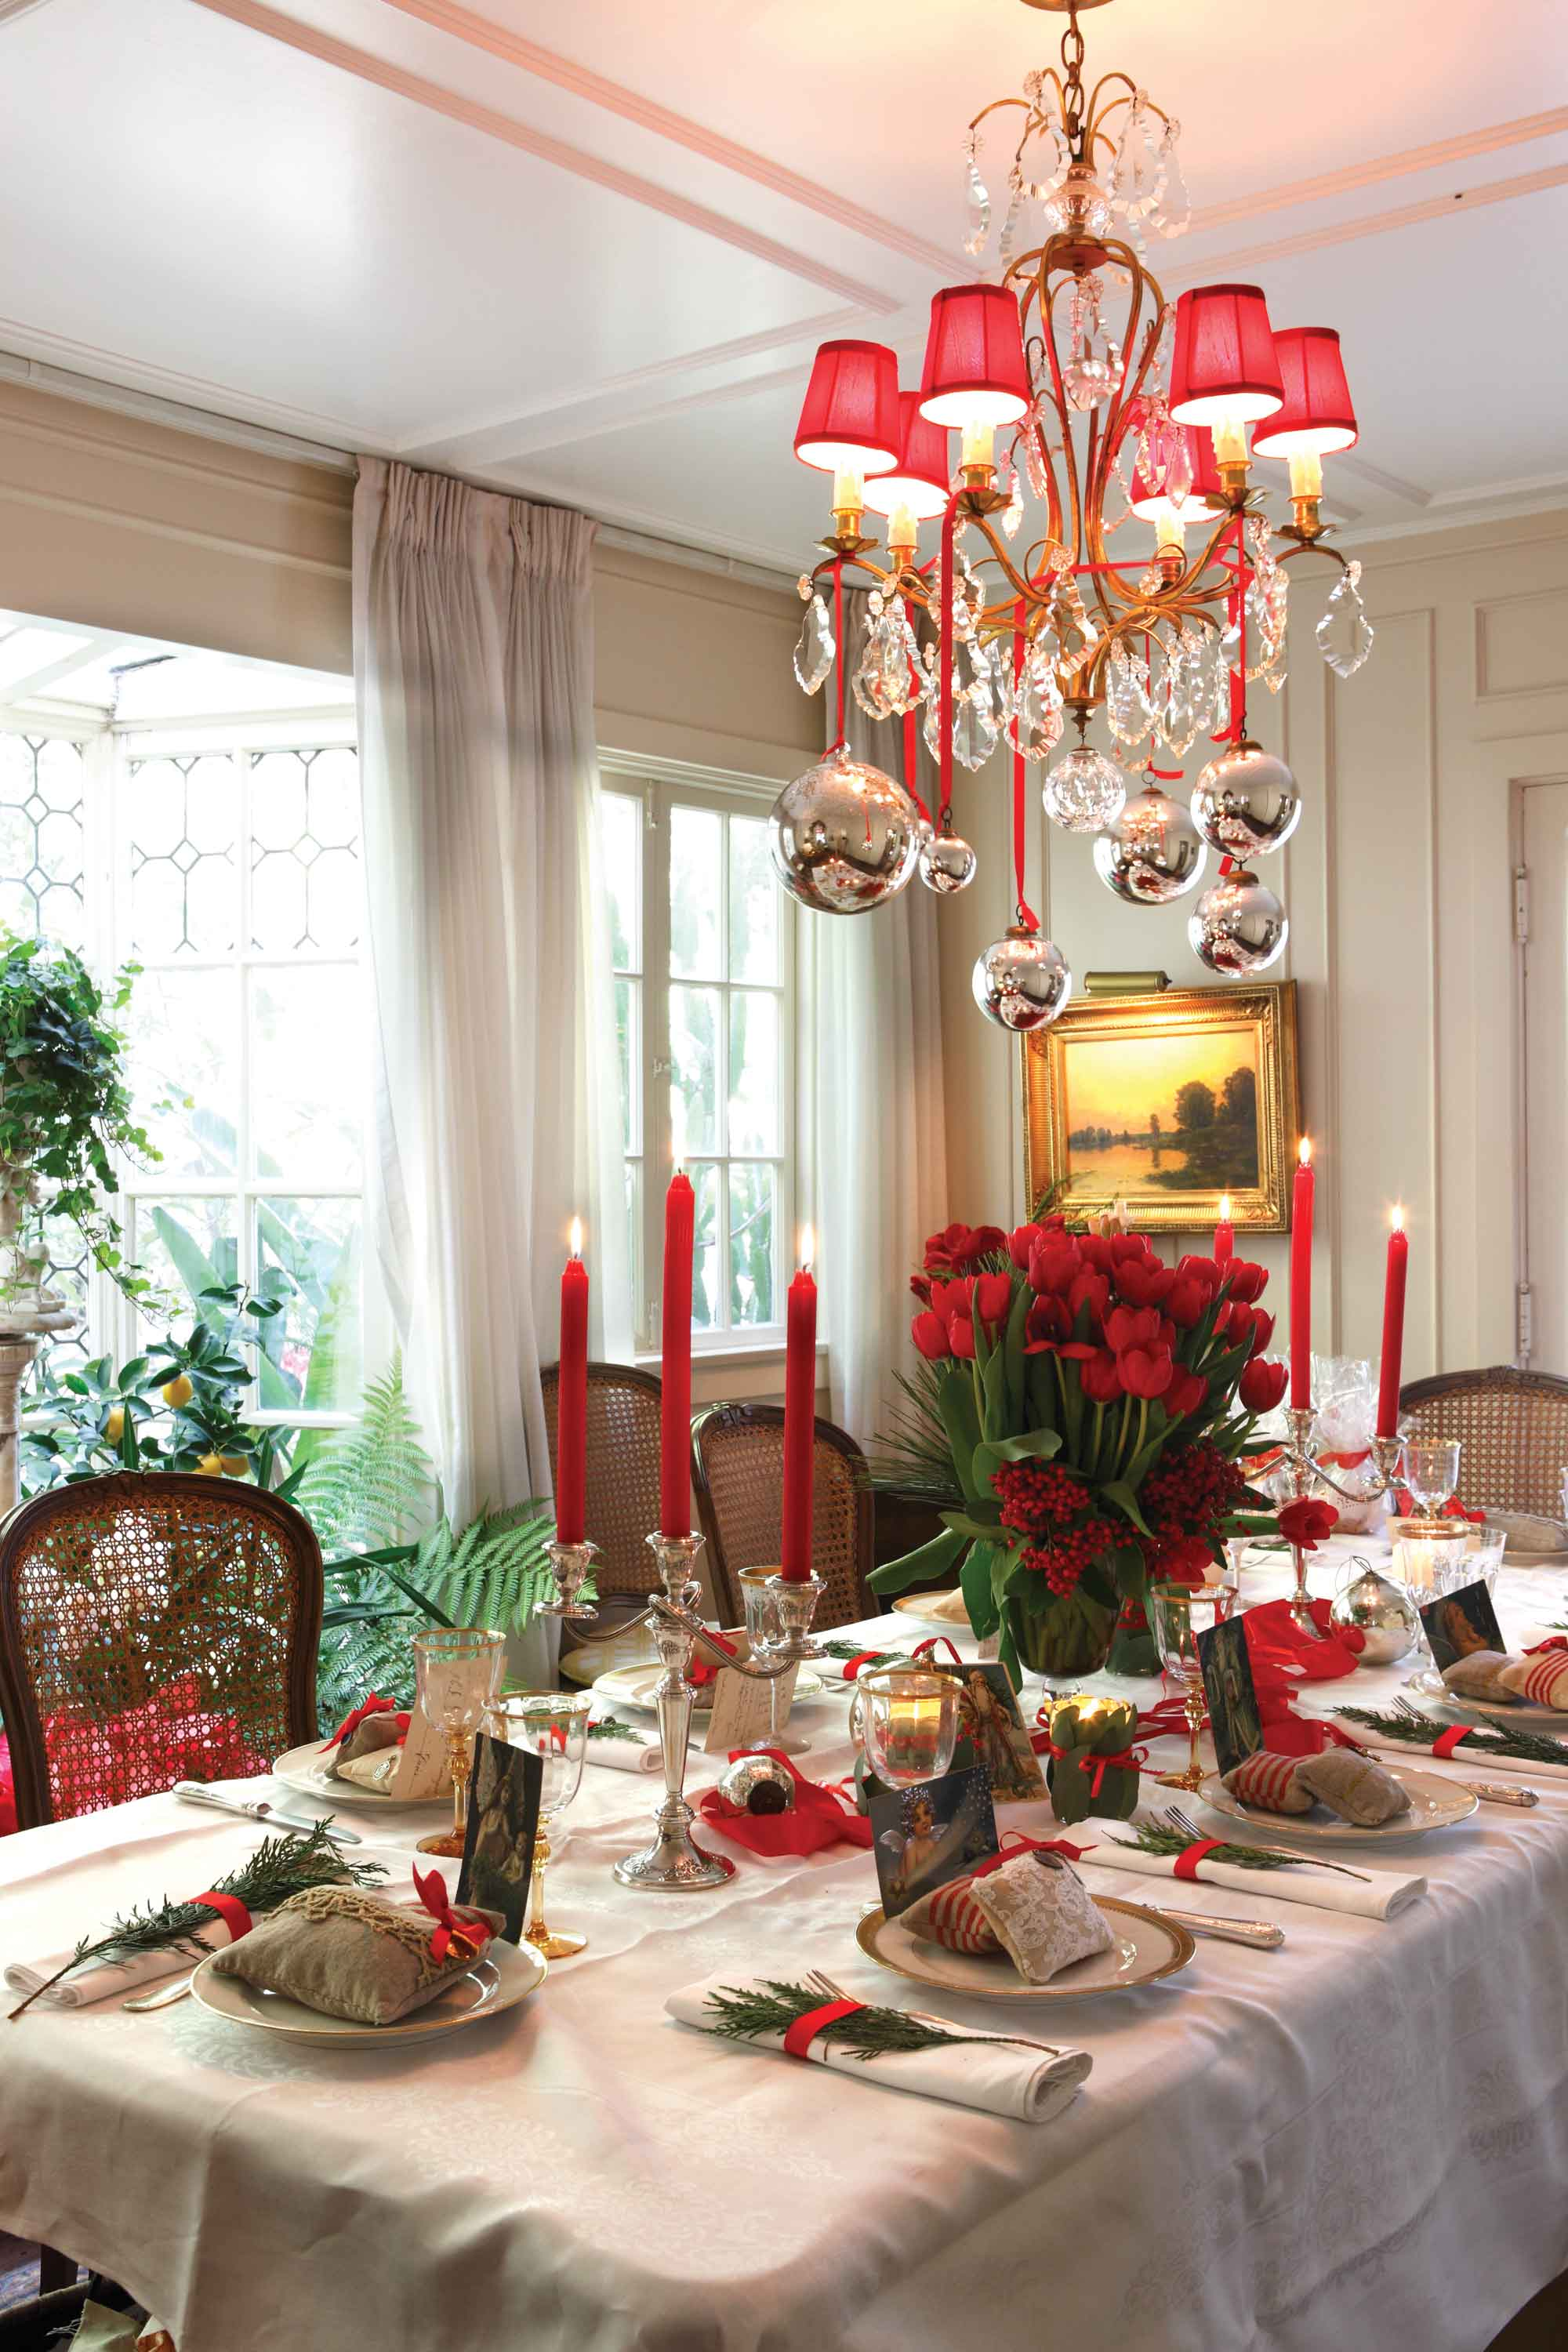 Dining Room Table How To Decorate For Christmas In European Style Holiday Cote